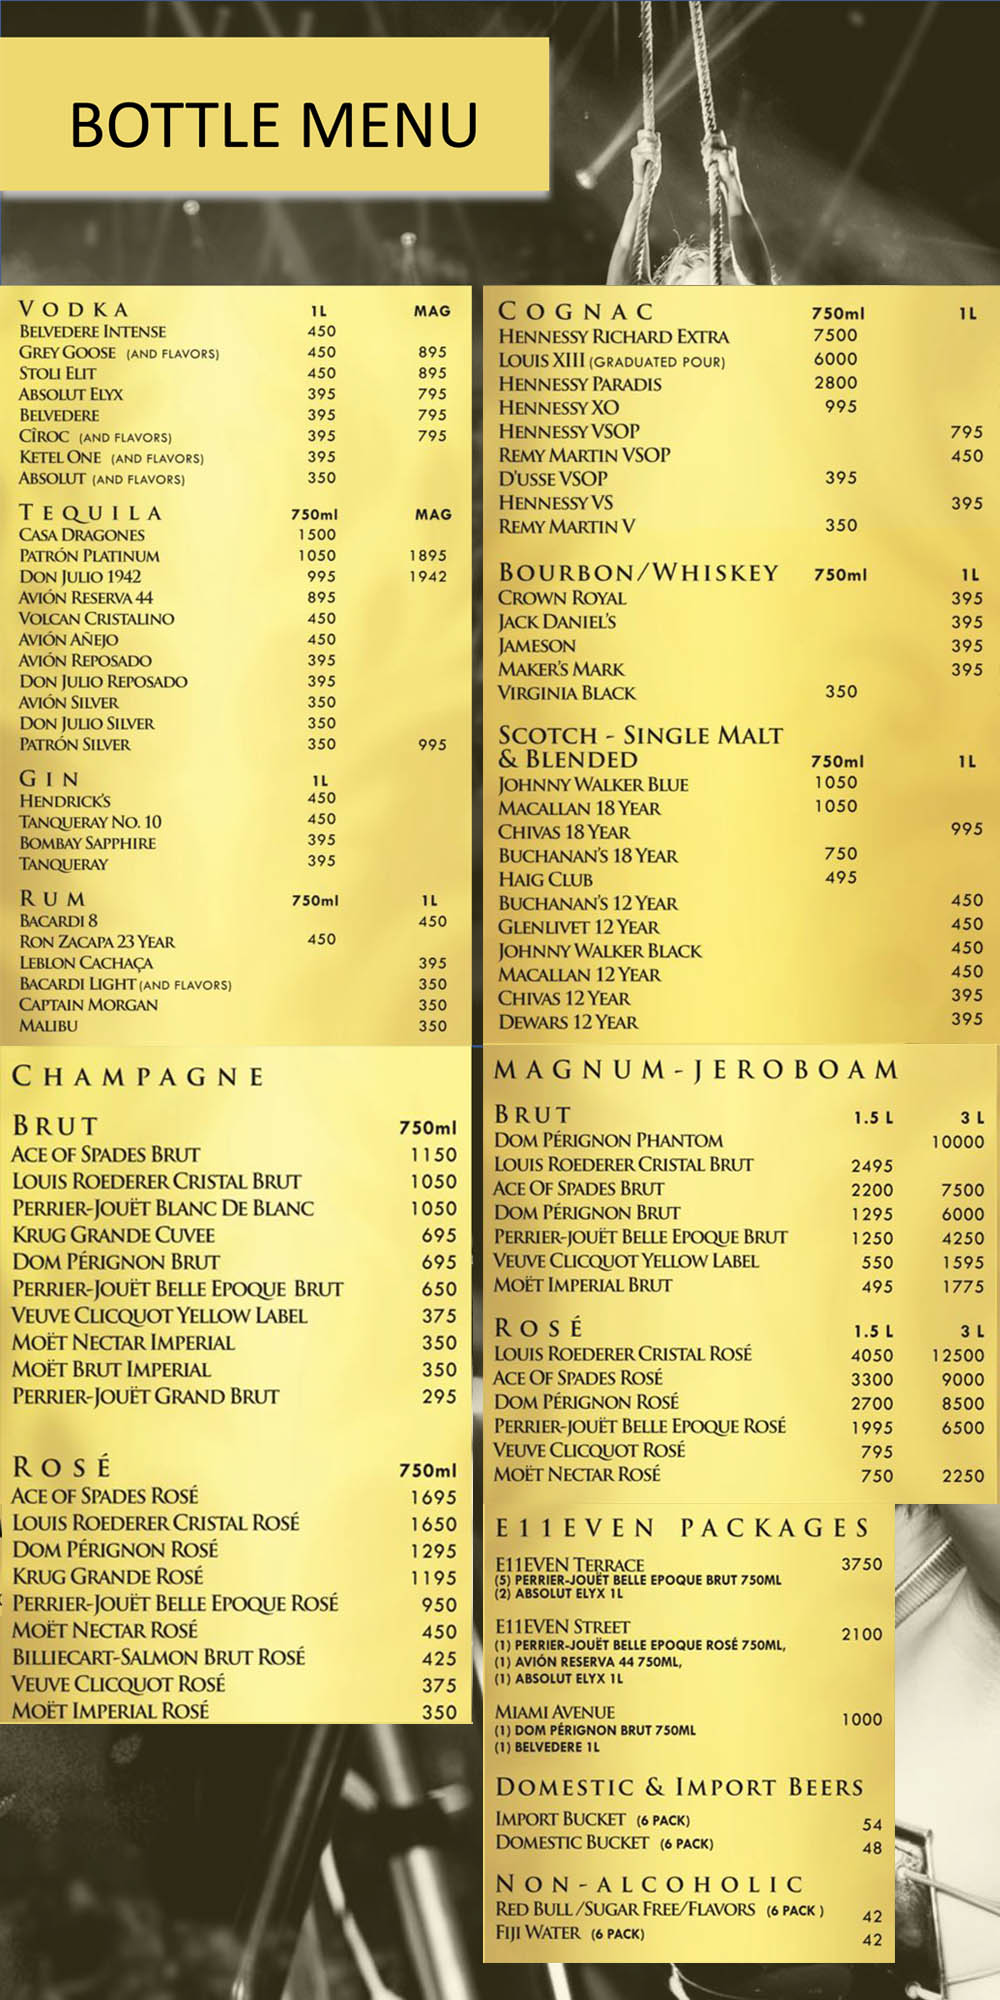 E11even Nightclub Menu